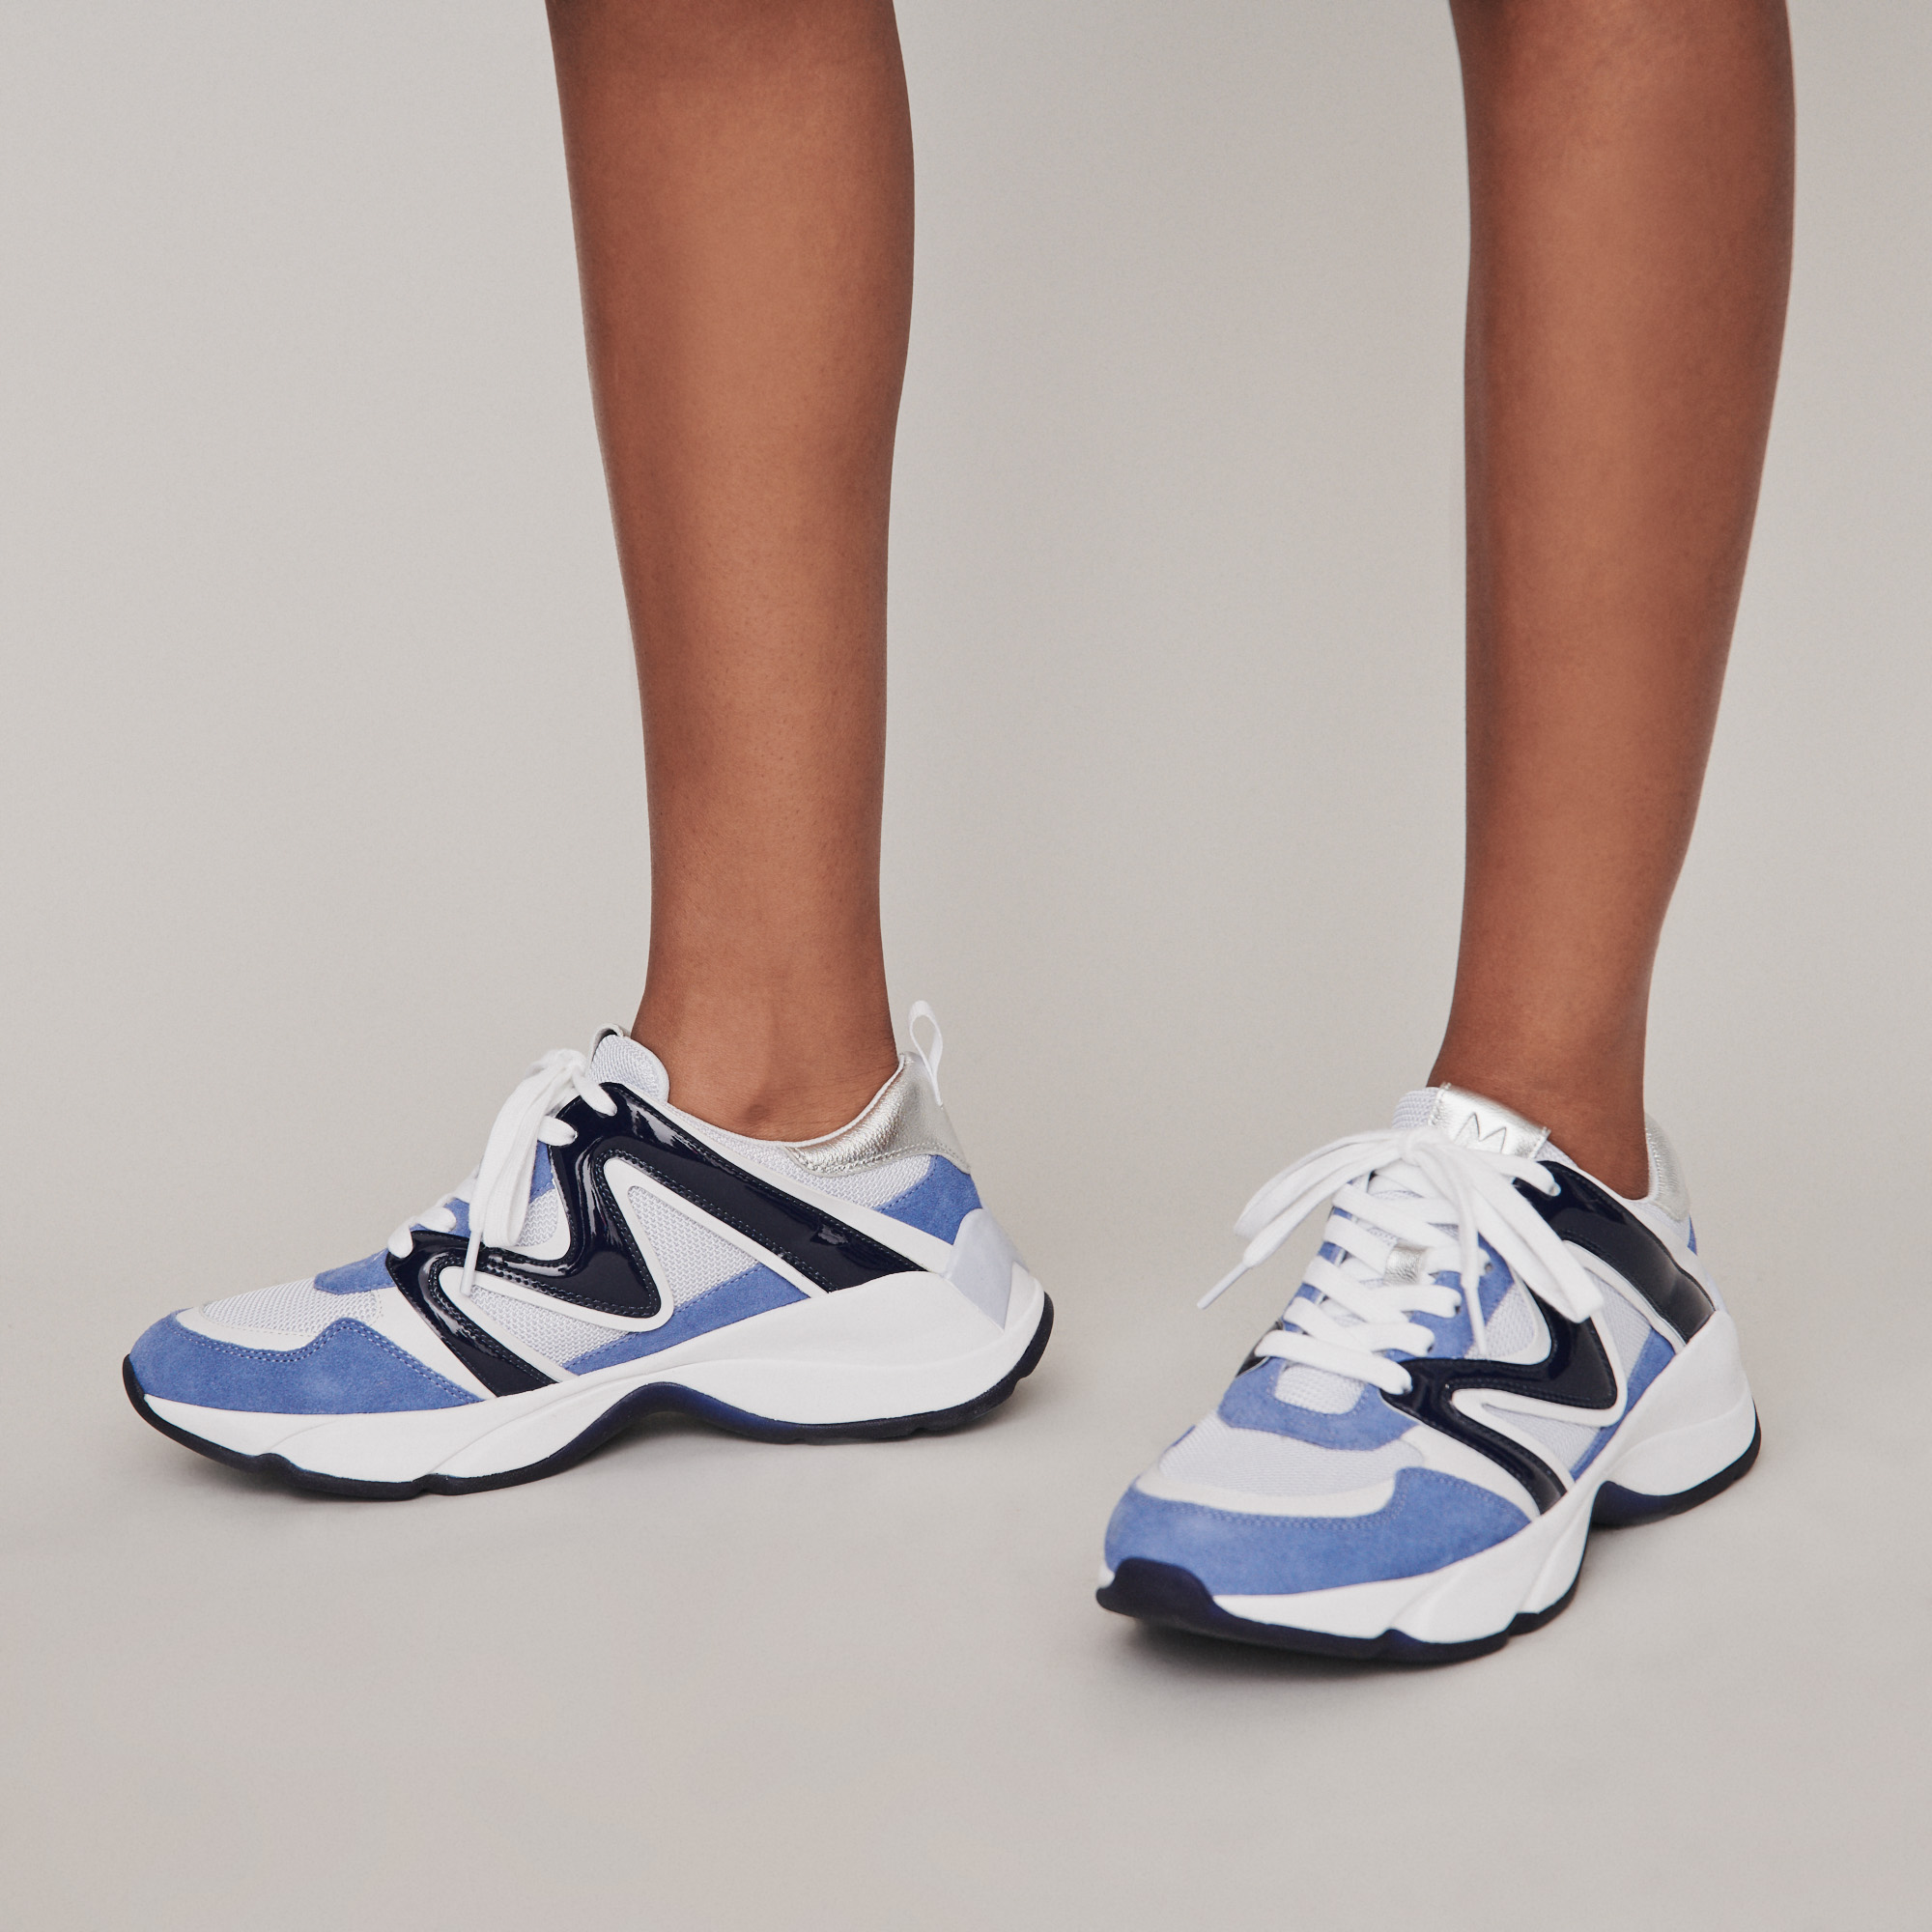 W22 mixed material sneakers in blue - Blue